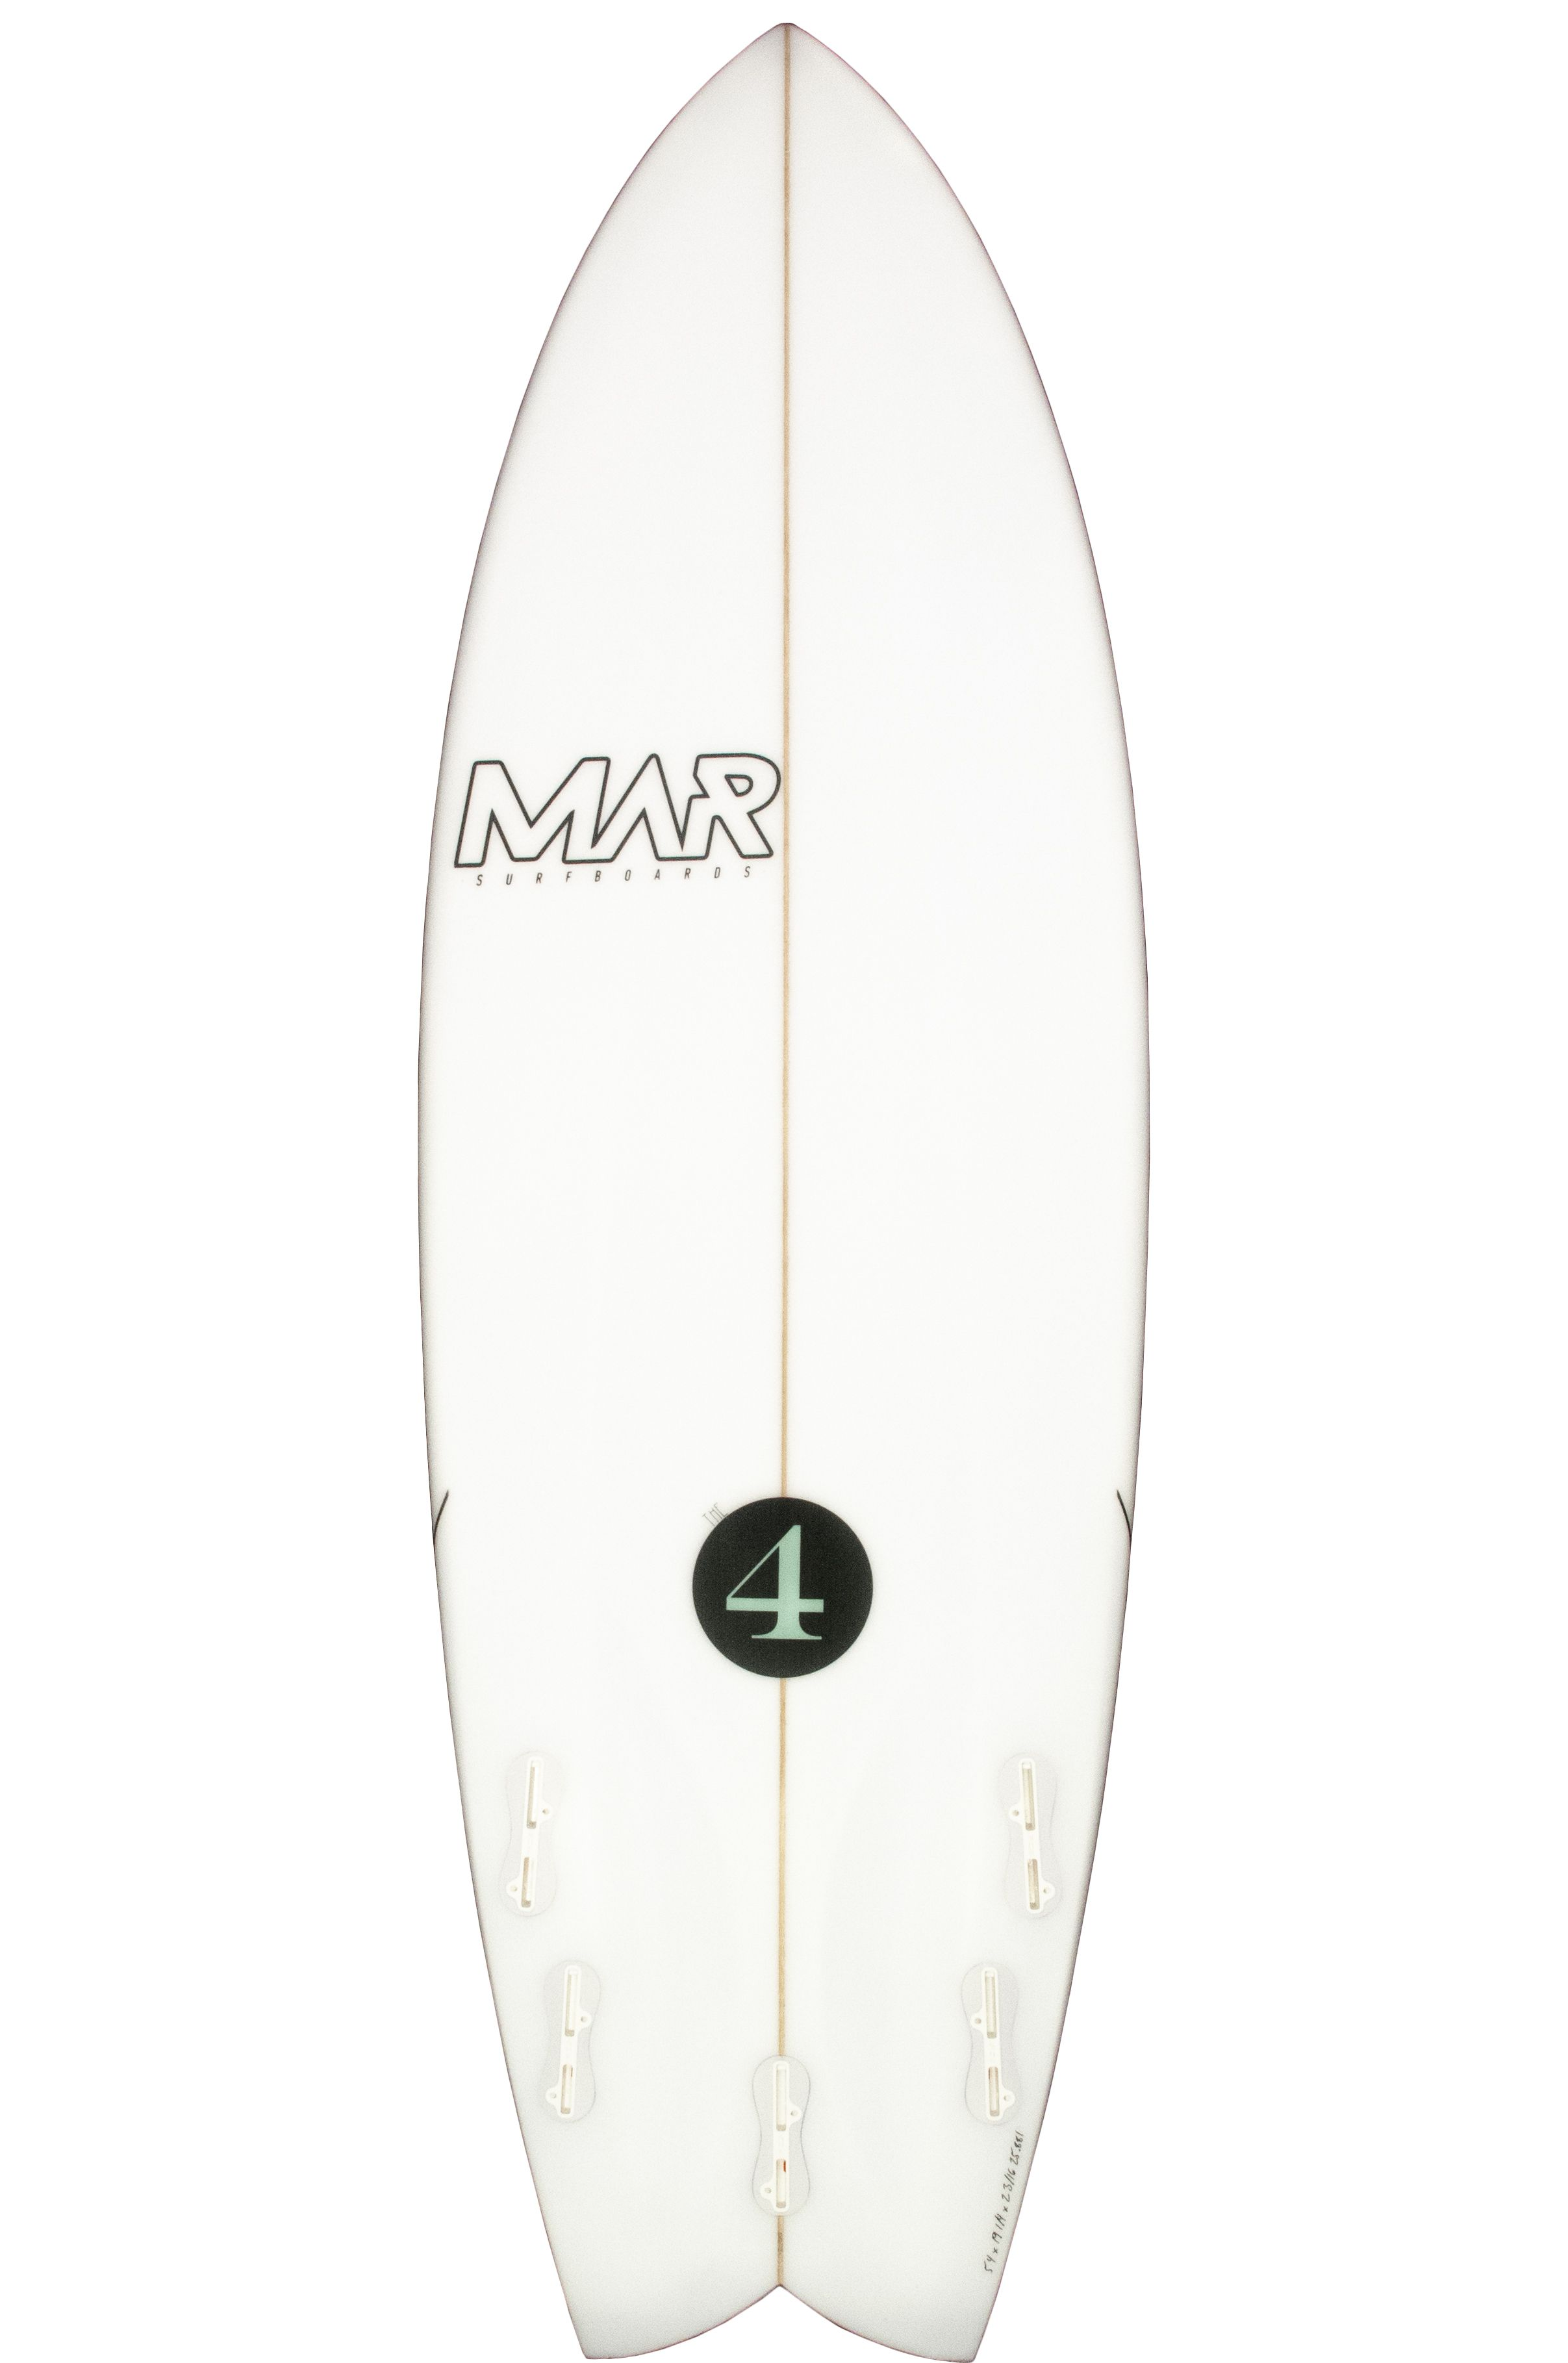 Prancha Surf Mar THE 4 Swallow Tail - White FCS II Multisystem 6ft0